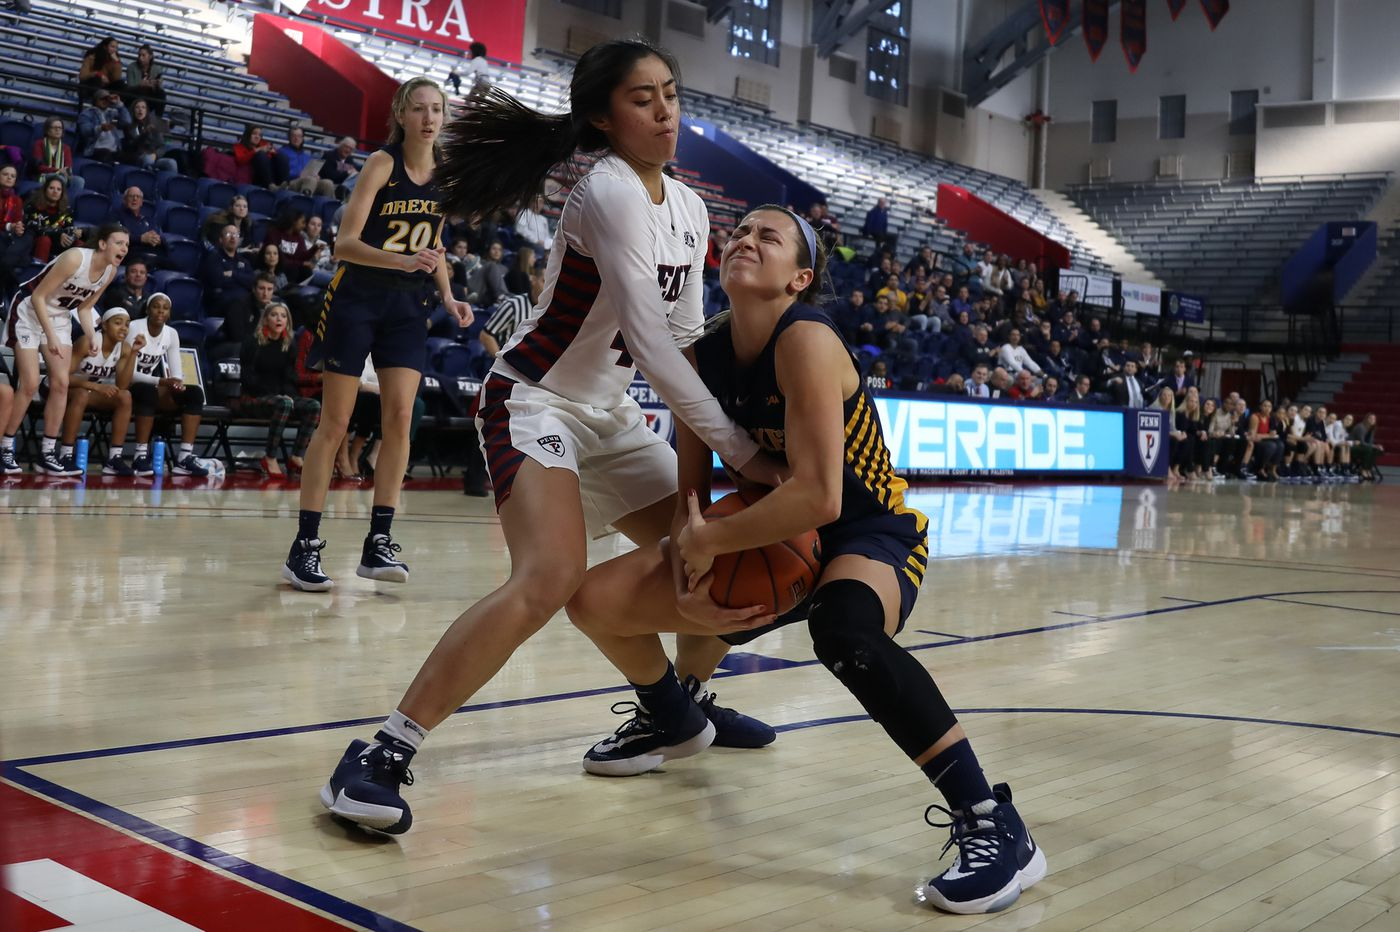 Maura Hendrixson leads Drexel to 61-34 CAA win over UNC-Wilmington